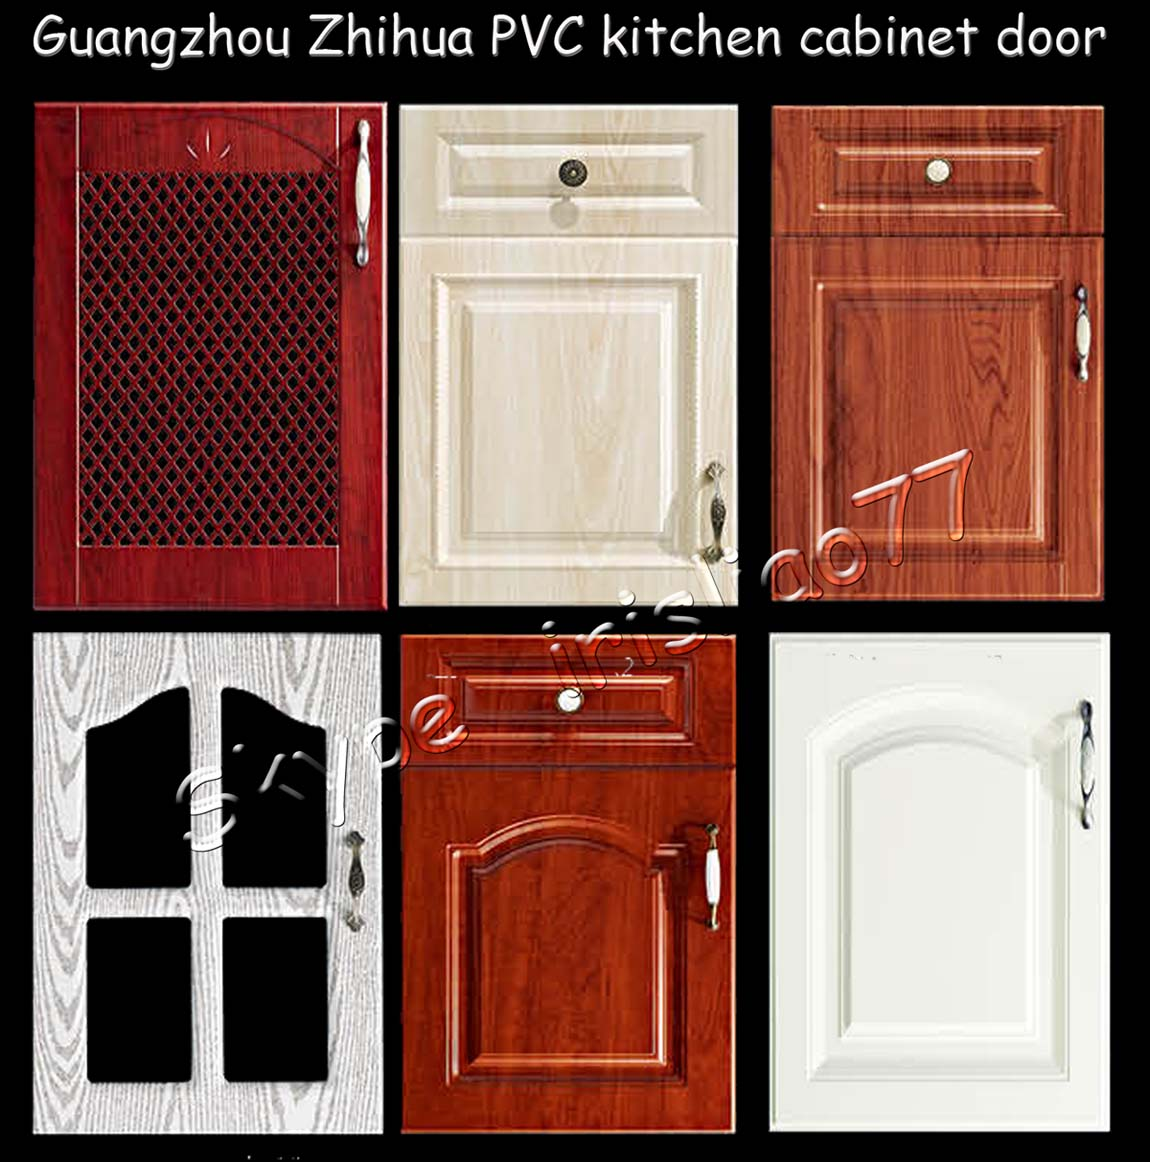 kitchen cabinets doors for sale commercial equipment prices solid wood white pvc frame laminate cabinet door price buy